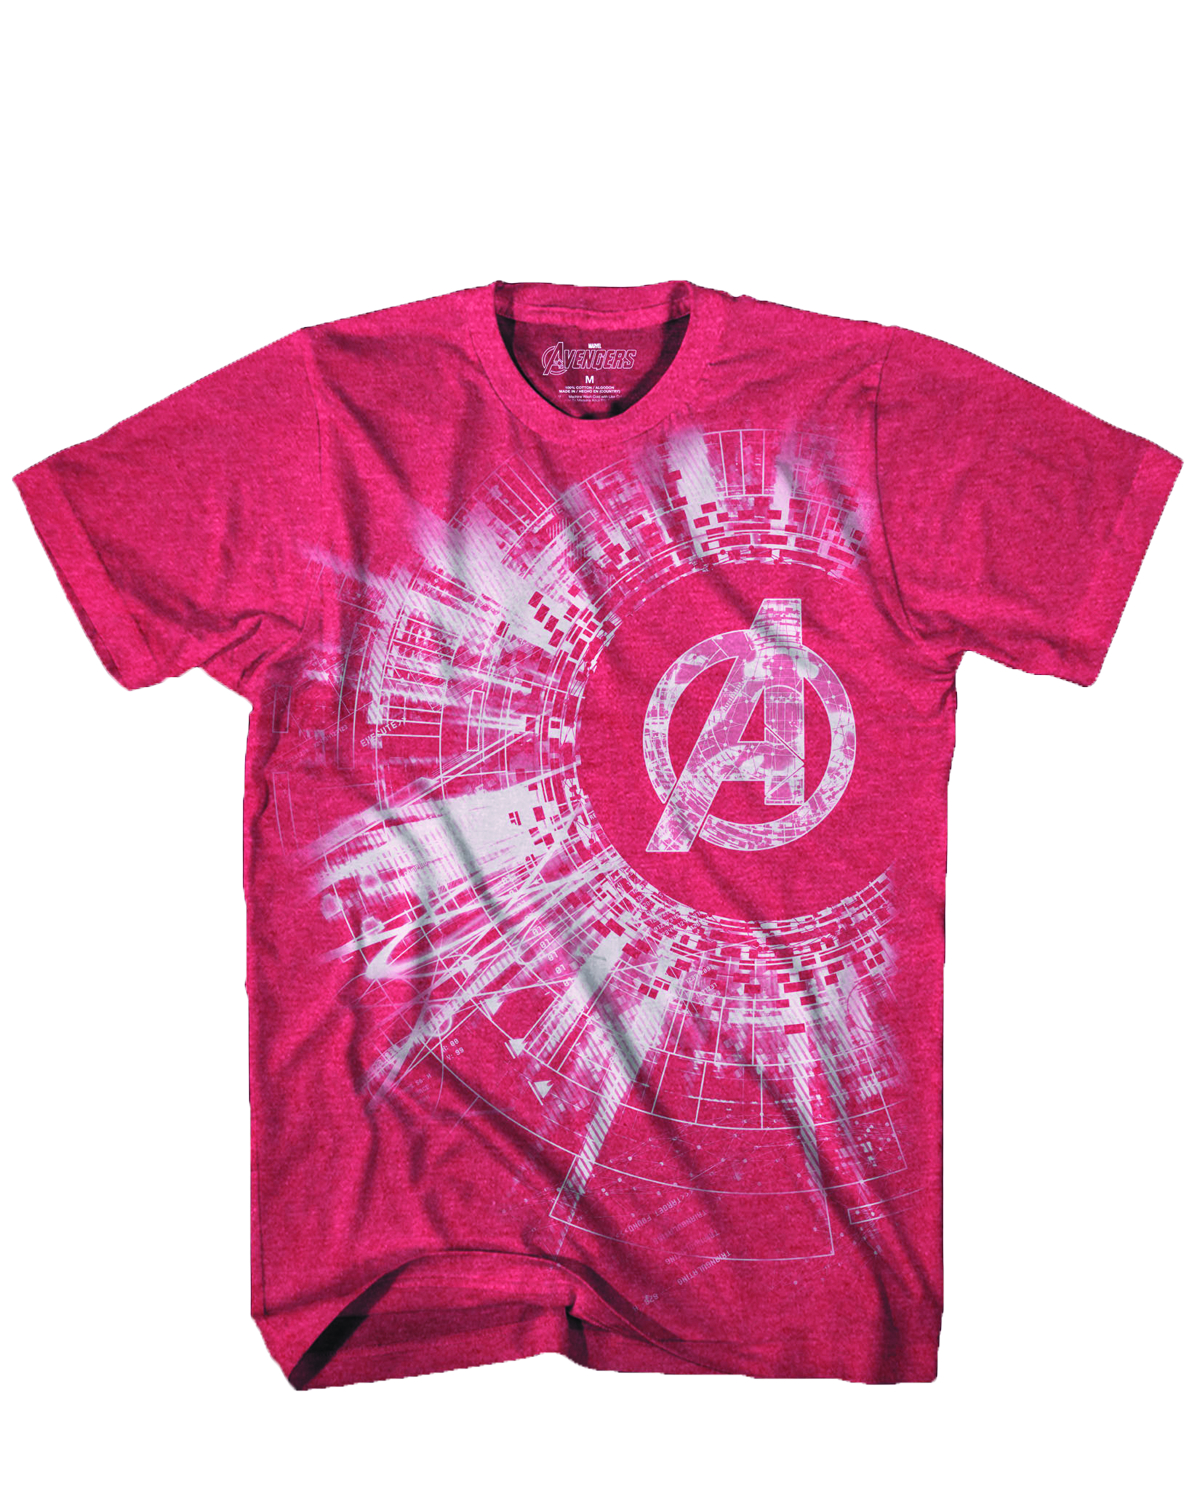 AVENGERS BLACK HOLE RED HEATHER T/S XXL